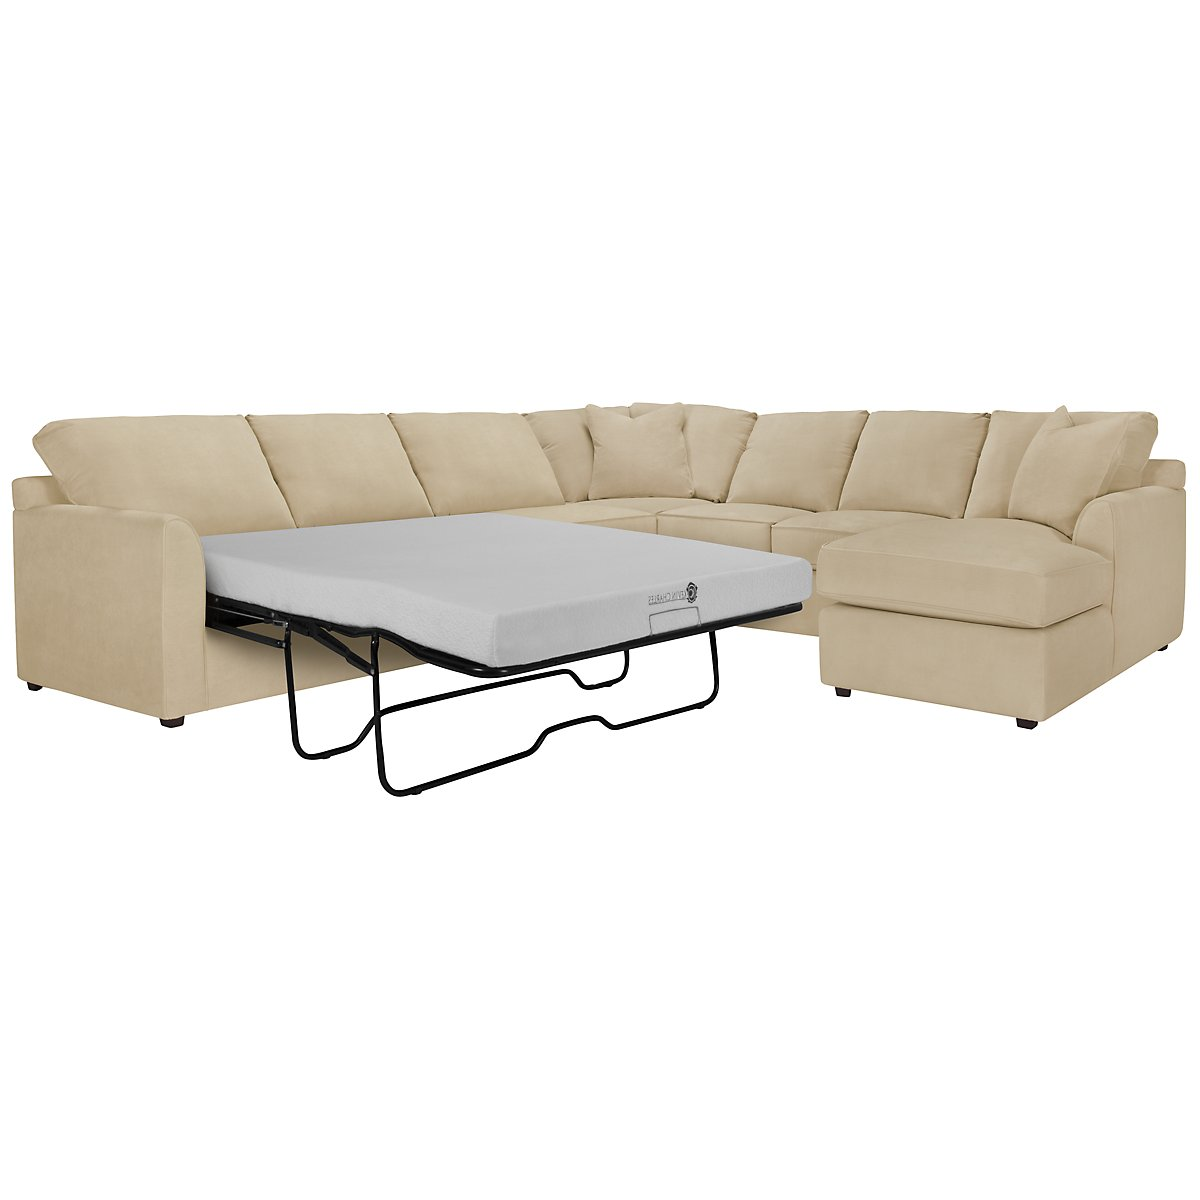 Express3 Light Beige Microfiber Right Chaise Memory Foam Sleeper Sectional